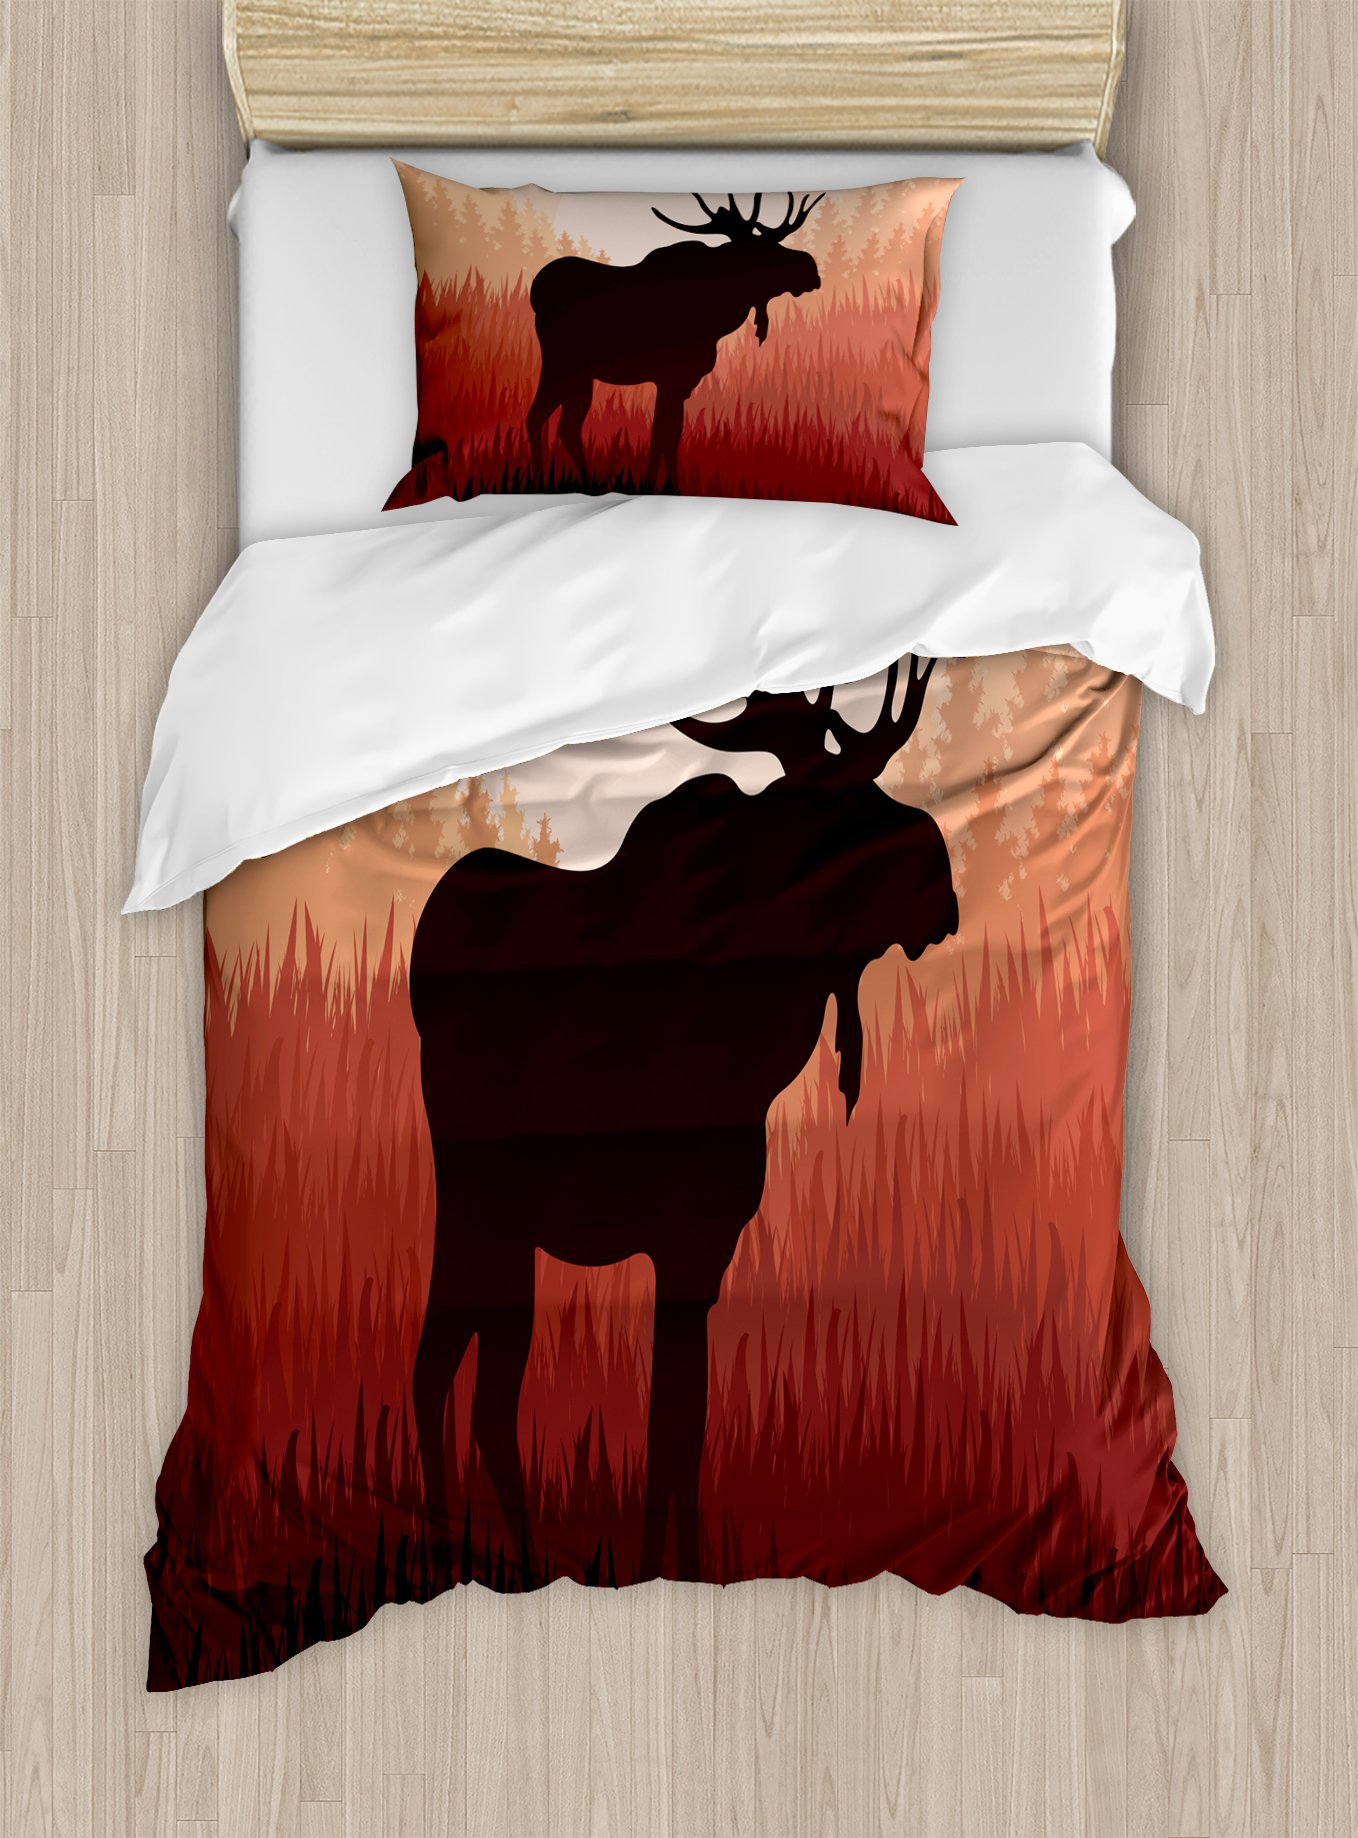 Ambesonne Moose Duvet Cover Set Twin Size, Antlers in Wild Alaska Forest Rusty Abstract Landscape Design Deer Theme Woods, Decorative 2 Piece Bedding Set with 1 Pillow Sham, Peach and Brown